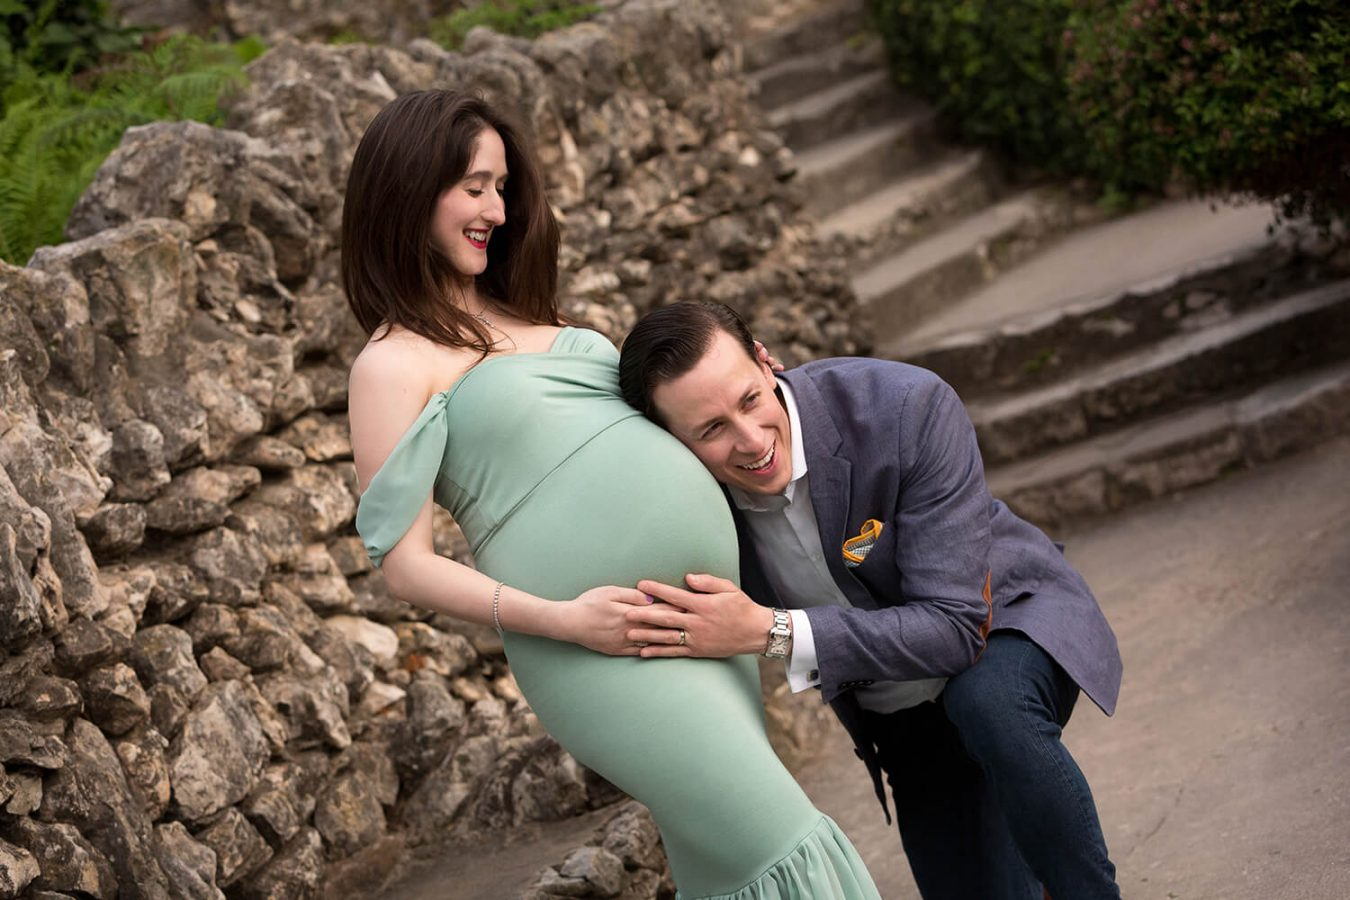 couple at Japanese tea garden in San Antonio, Texas mom in sage green dress for maternity photo session